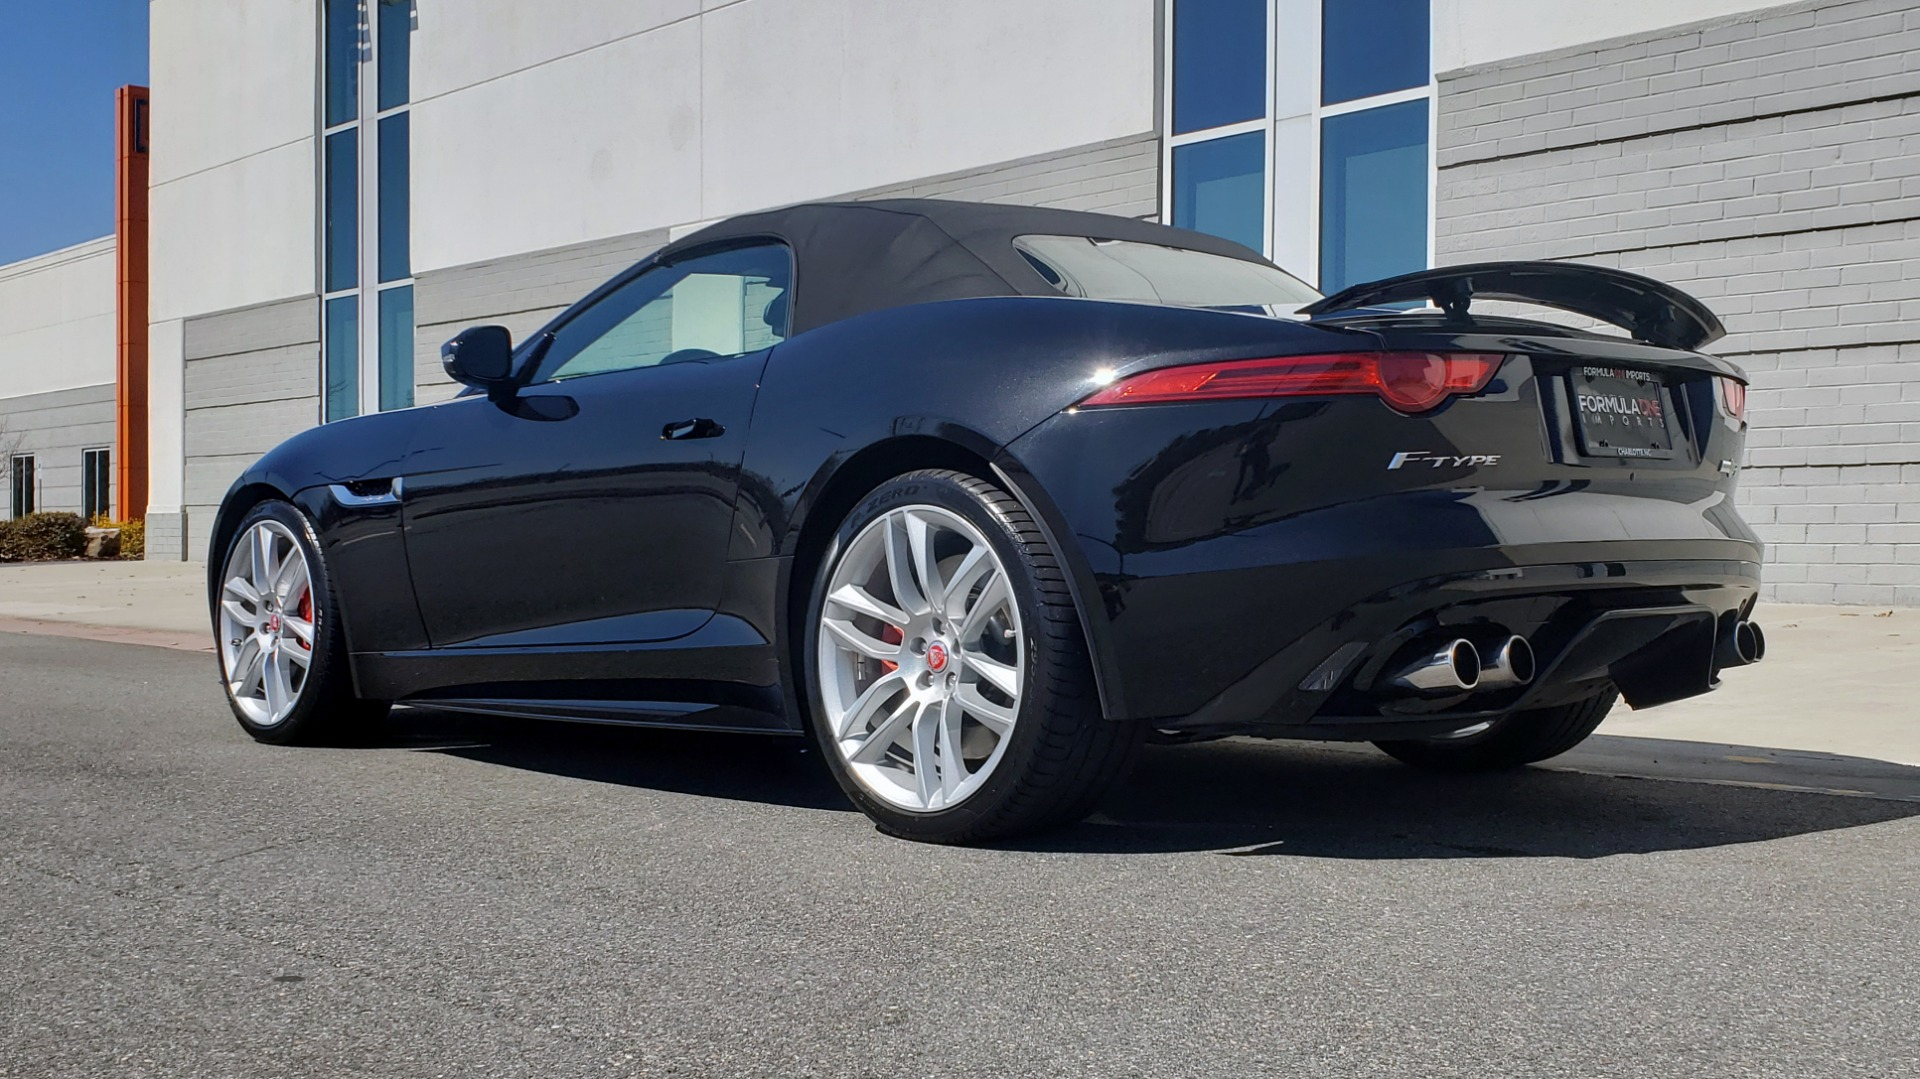 Used 2016 Jaguar F-TYPE R CONVERTIBLE / SC 5.0L 550HP / VISION PACK 3 / BSM / REARVIEW for sale $63,000 at Formula Imports in Charlotte NC 28227 9